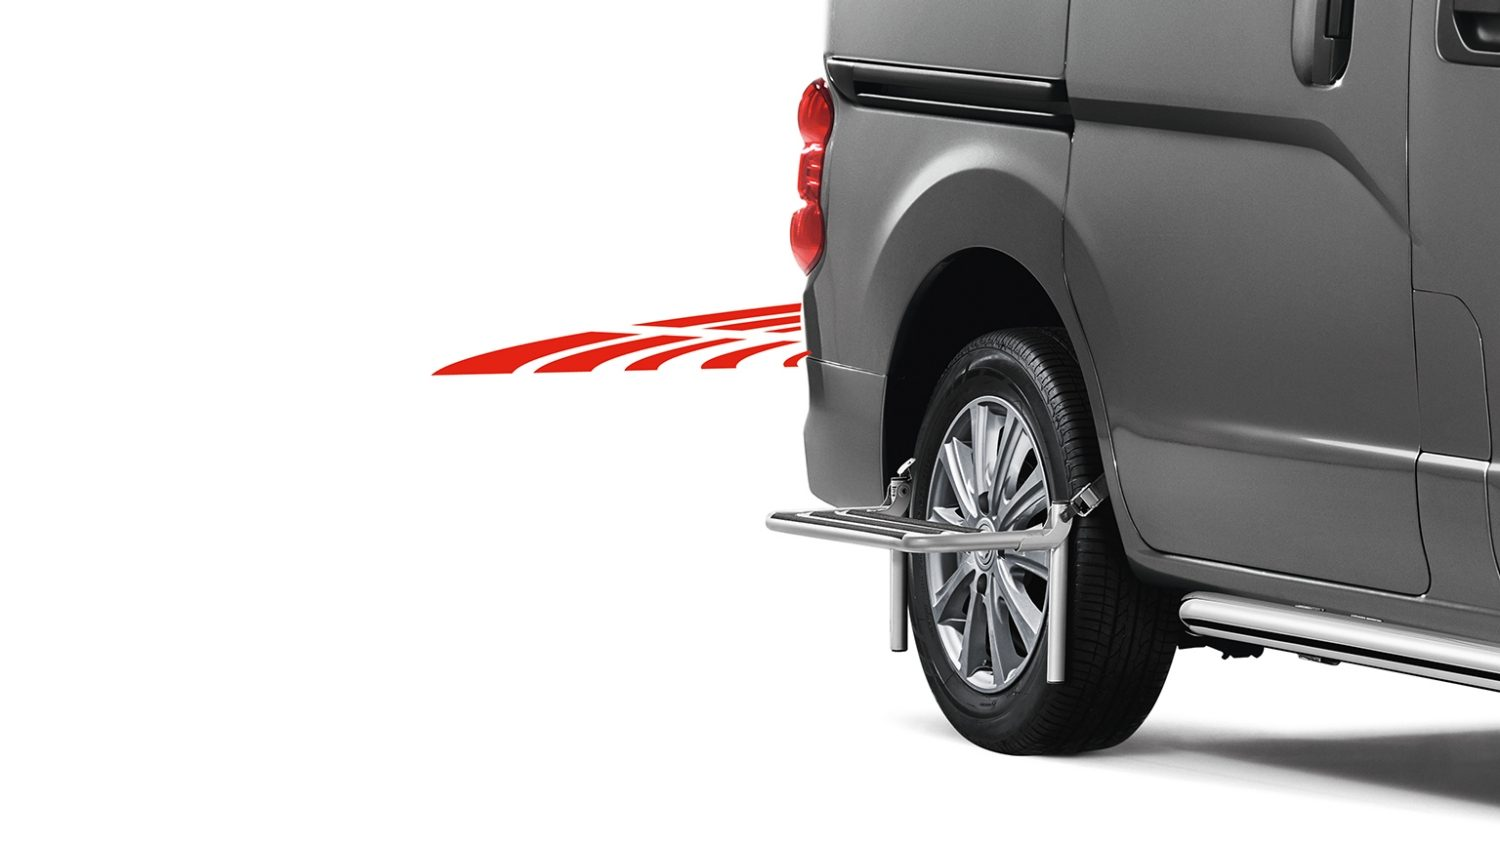 Nissan Evalia - Safety - Rear parking system